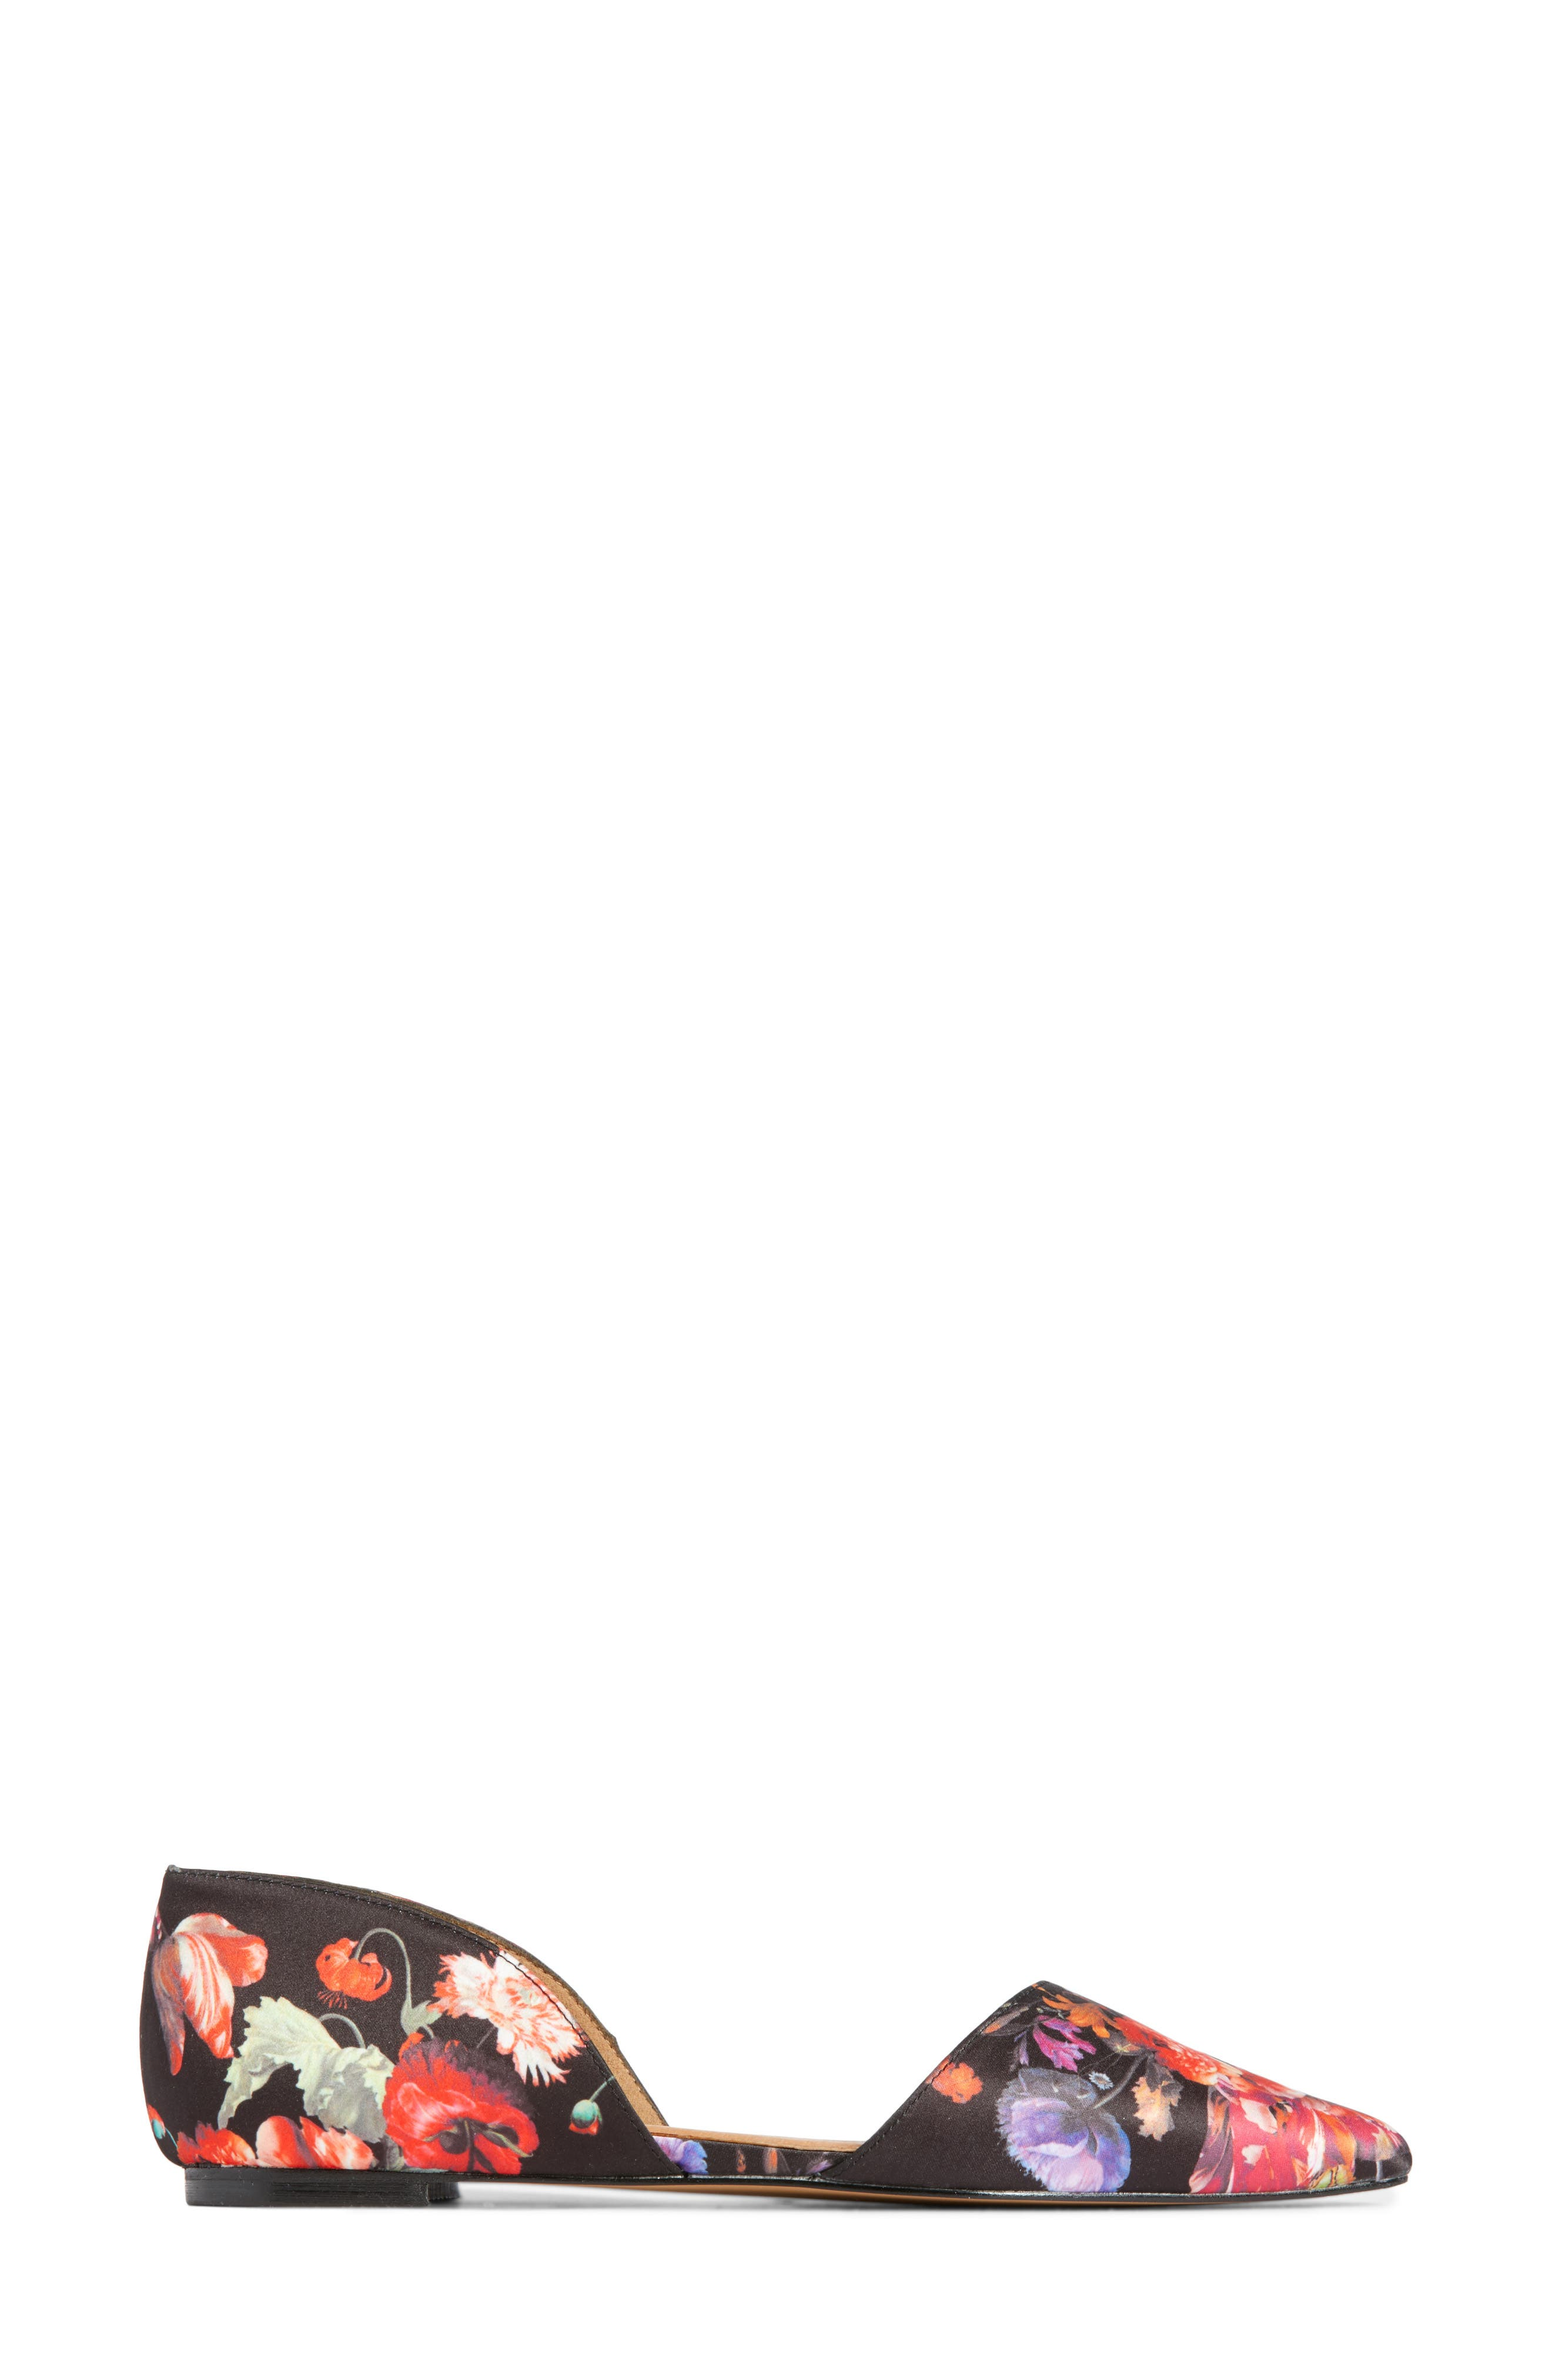 Maisy d'Orsay Flat,                             Alternate thumbnail 4, color,                             Black/ Red Floral Fabric